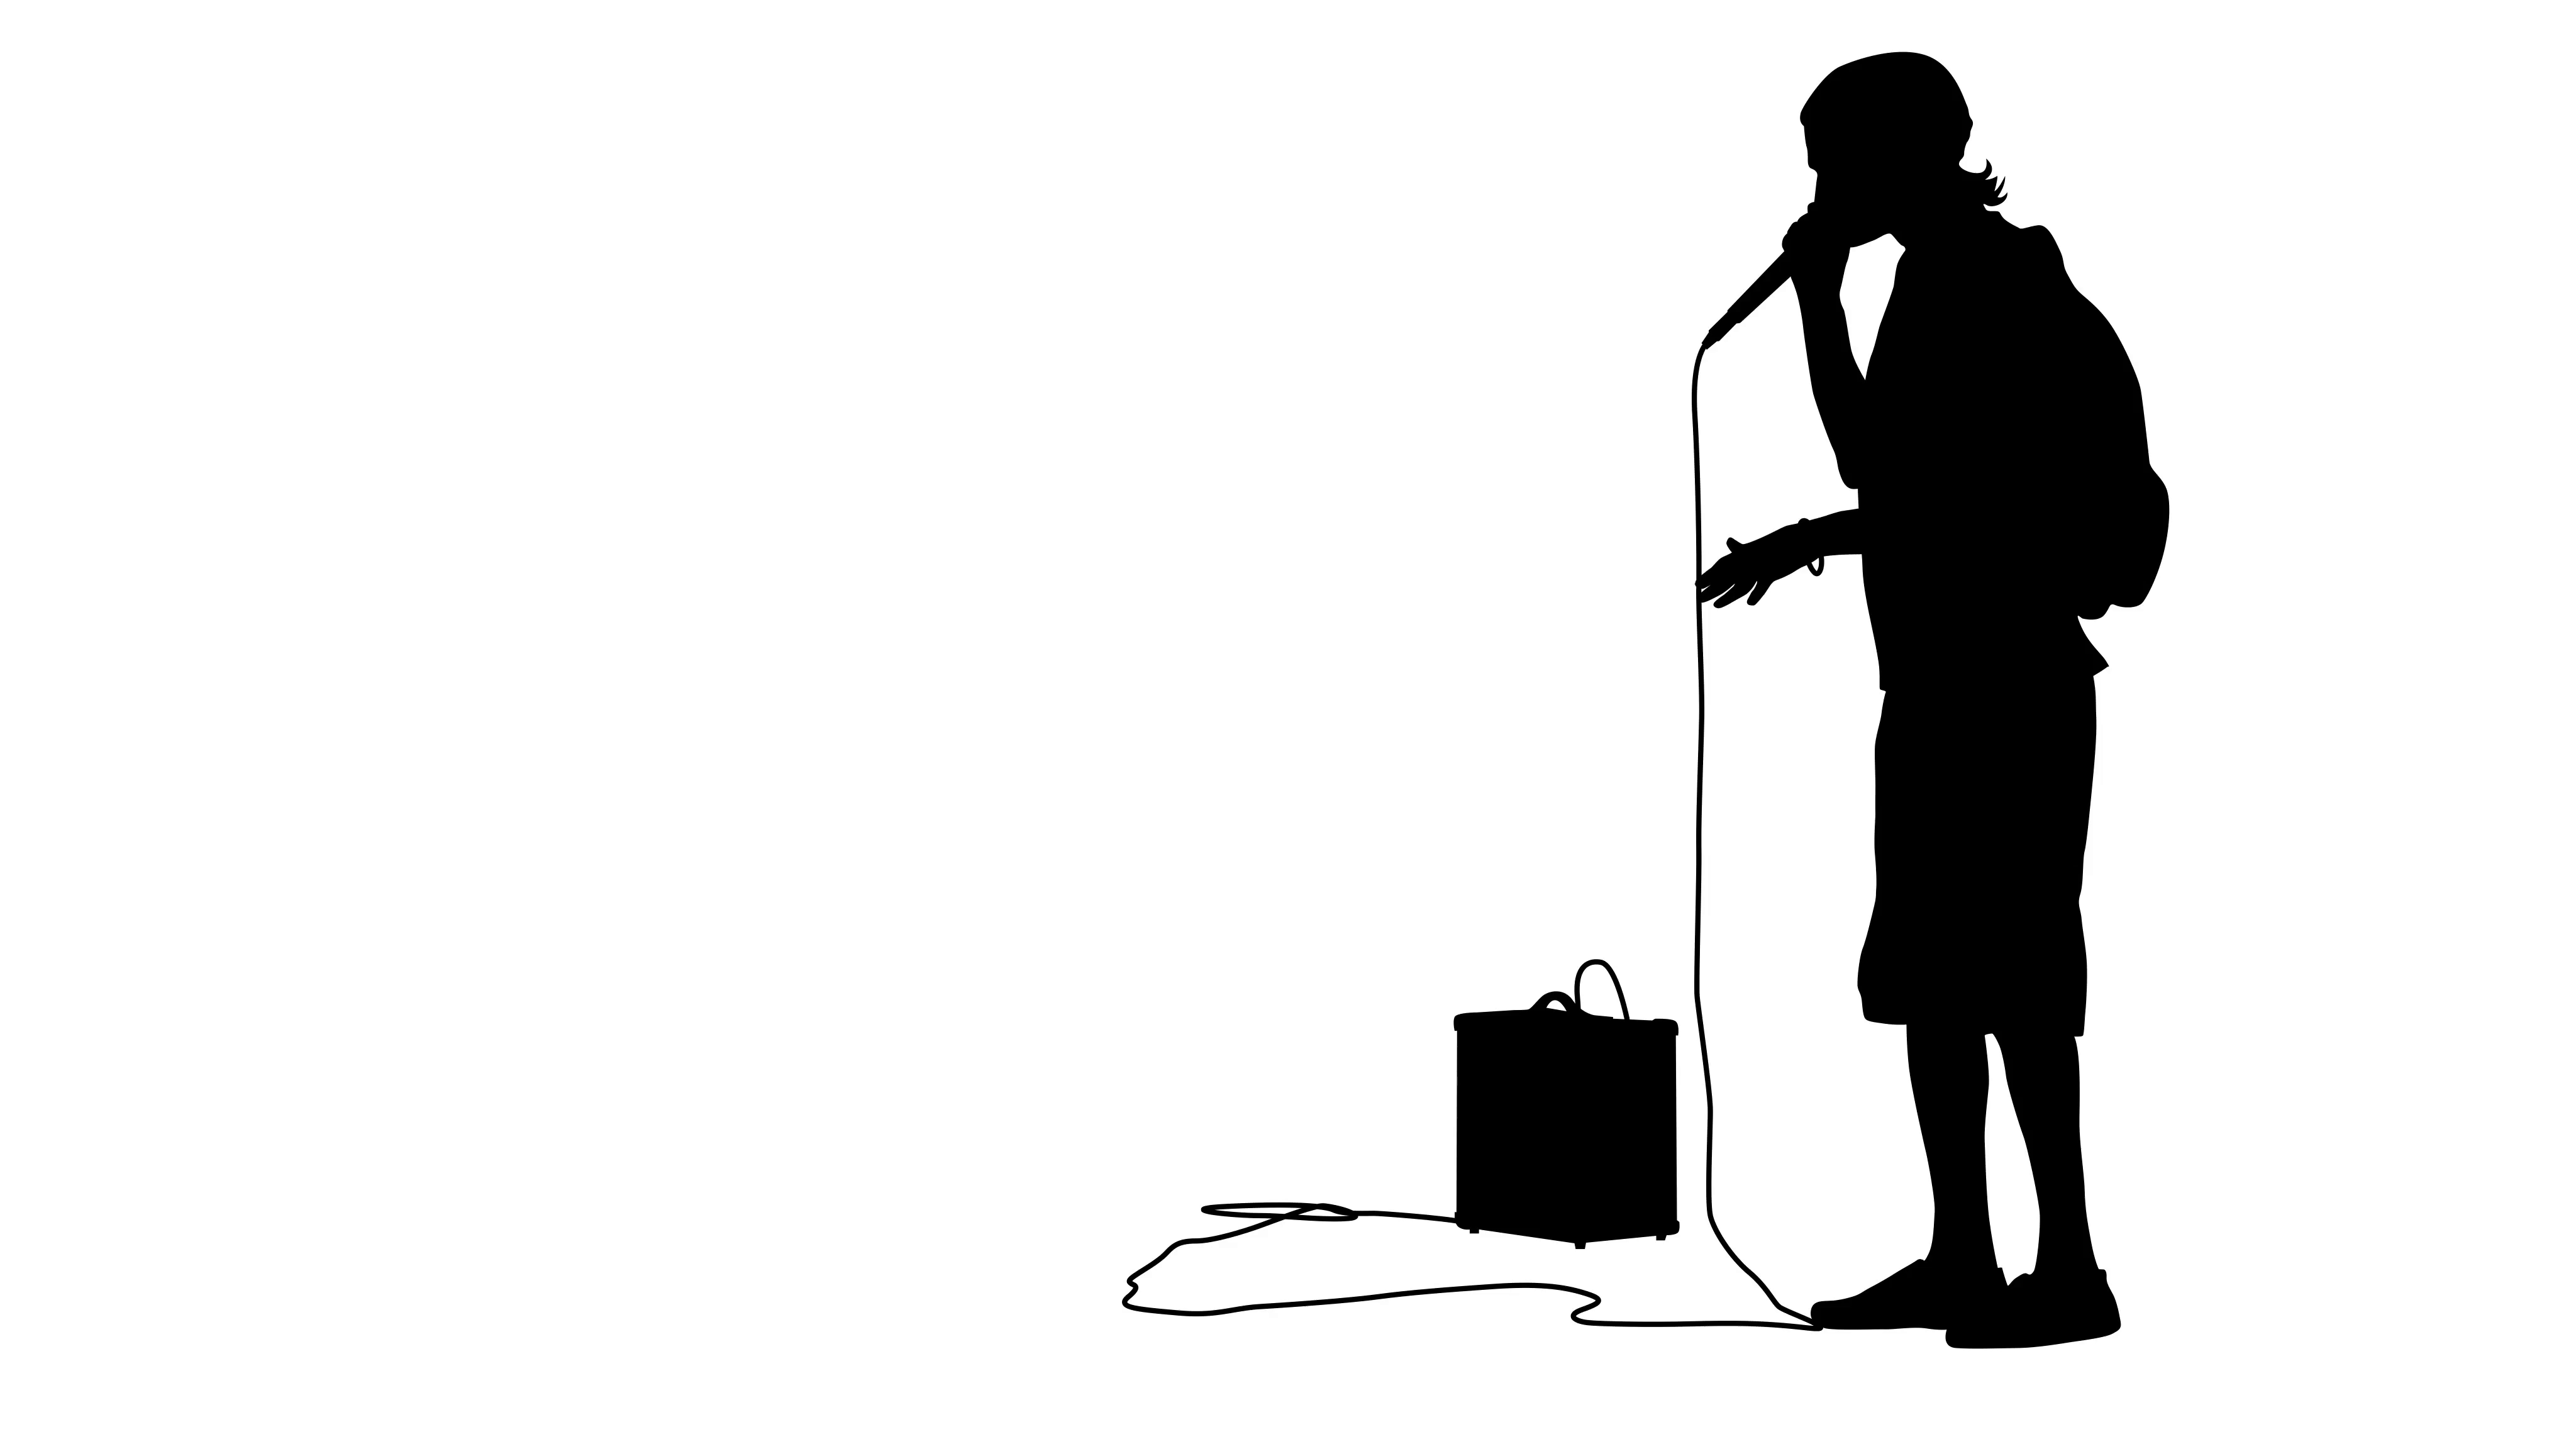 4096x2304 Silhouette Of The Guy Beatbox With A Microphone. White Screen